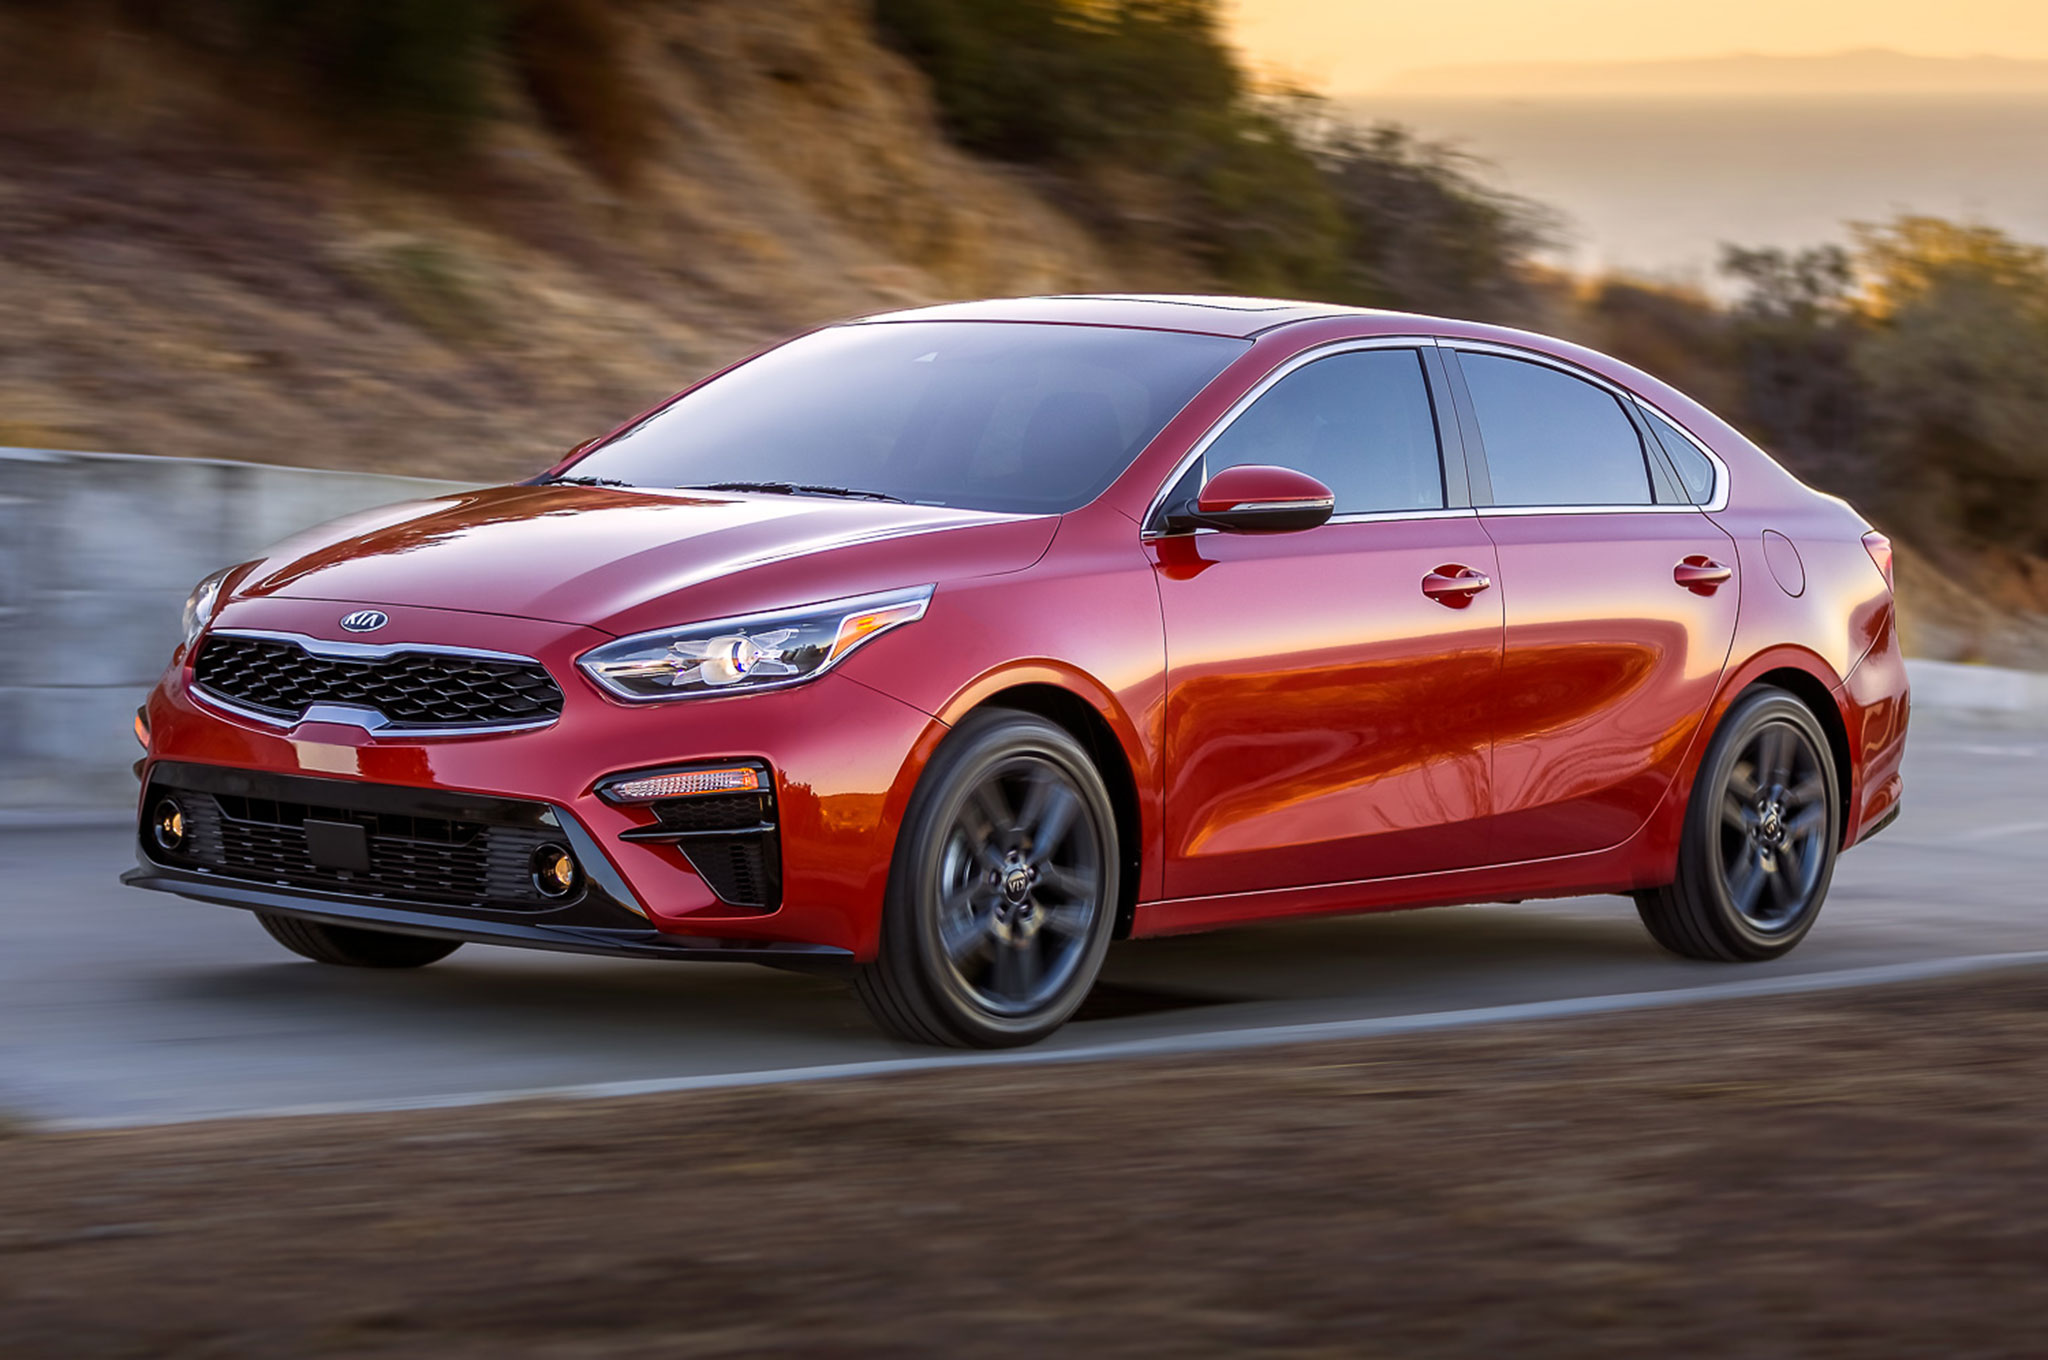 2019 Kia Forte Front Side Motion View On Road